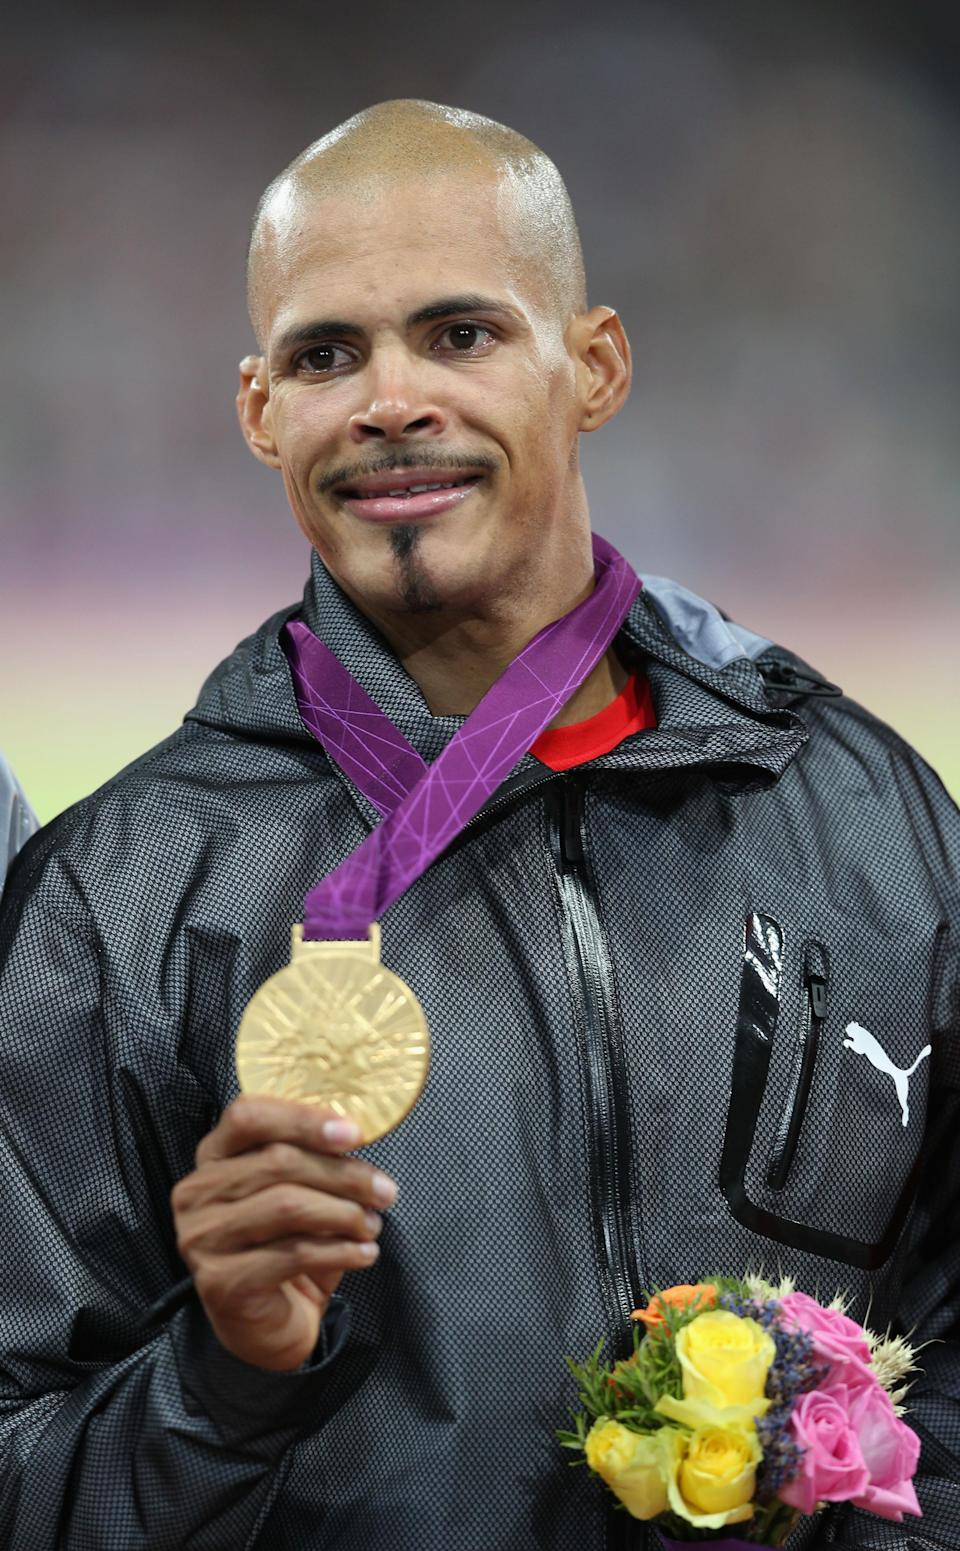 """Gold medal-winning hurdler <a href=""""http://yhoo.it/Nhx3ML"""" rel=""""nofollow noopener"""" target=""""_blank"""" data-ylk=""""slk:Felix Sanchez"""" class=""""link rapid-noclick-resp"""">Felix Sanchez</a> of Dominican Republic has both Spanish and African-Dominican heritage. (Photo by Clive Brunskill/Getty Images)"""